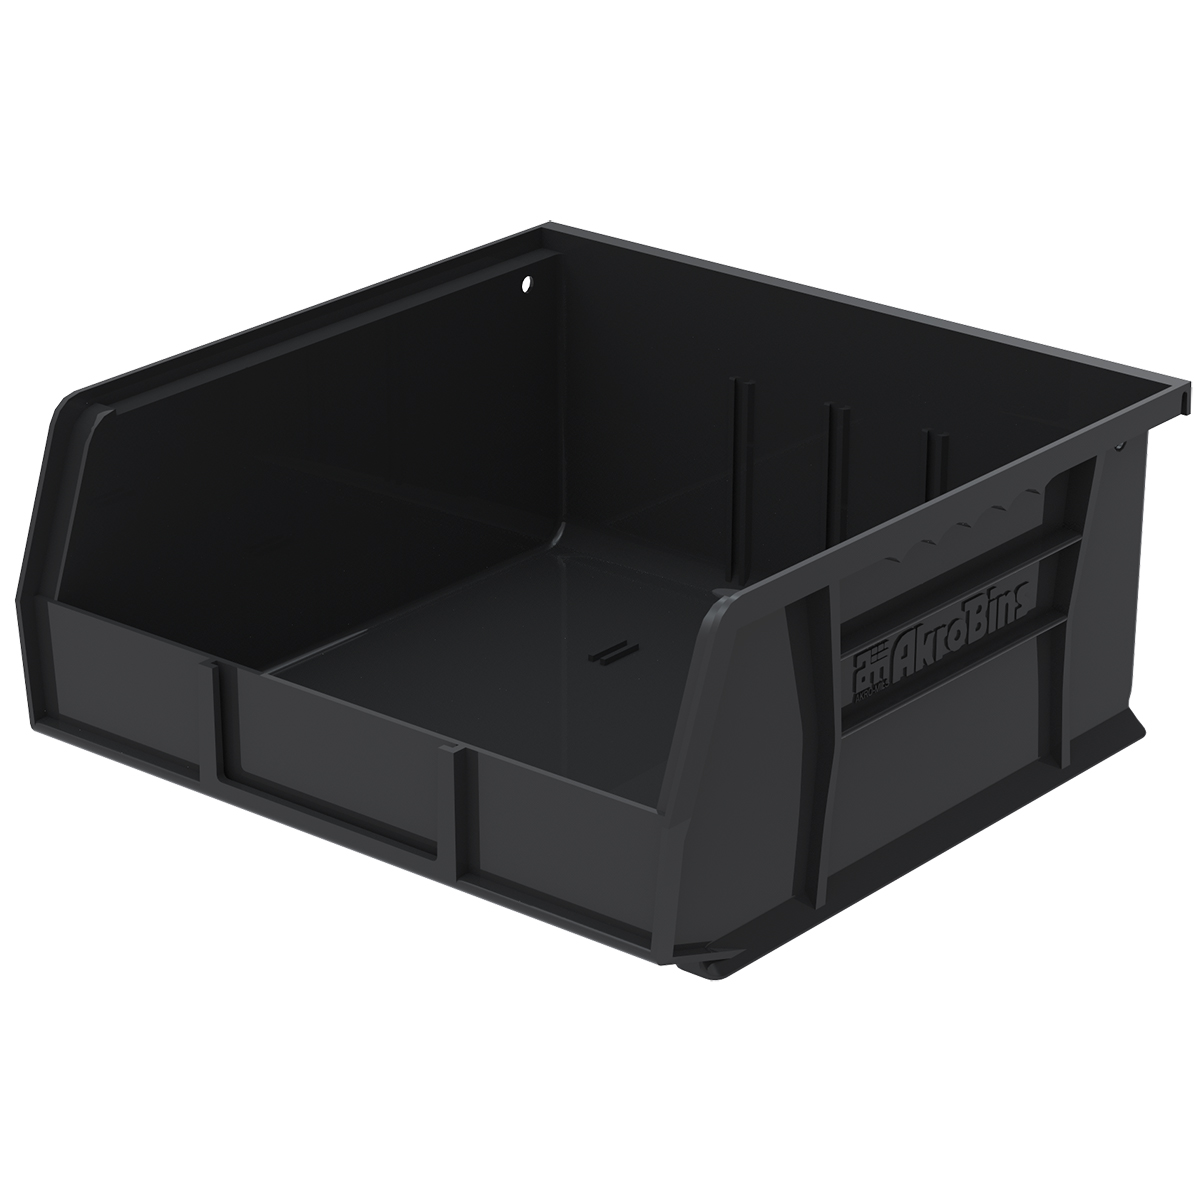 AkroBin 10-7/8 x 11 x 5, Black (30235BLACK).  This item sold in carton quantities of 6.